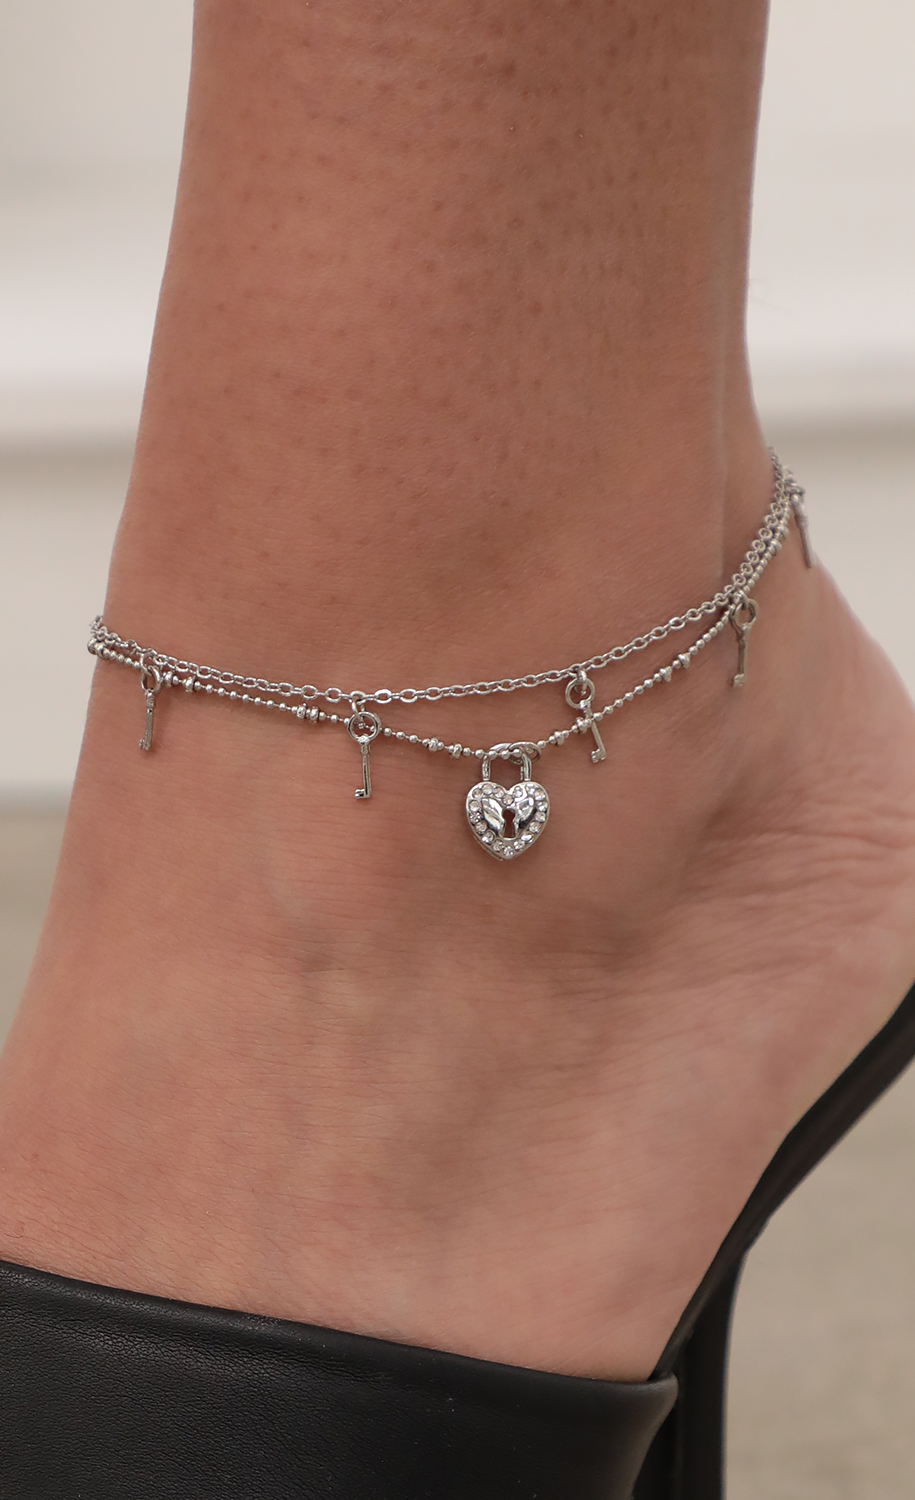 Heart Lock and Key Anklet